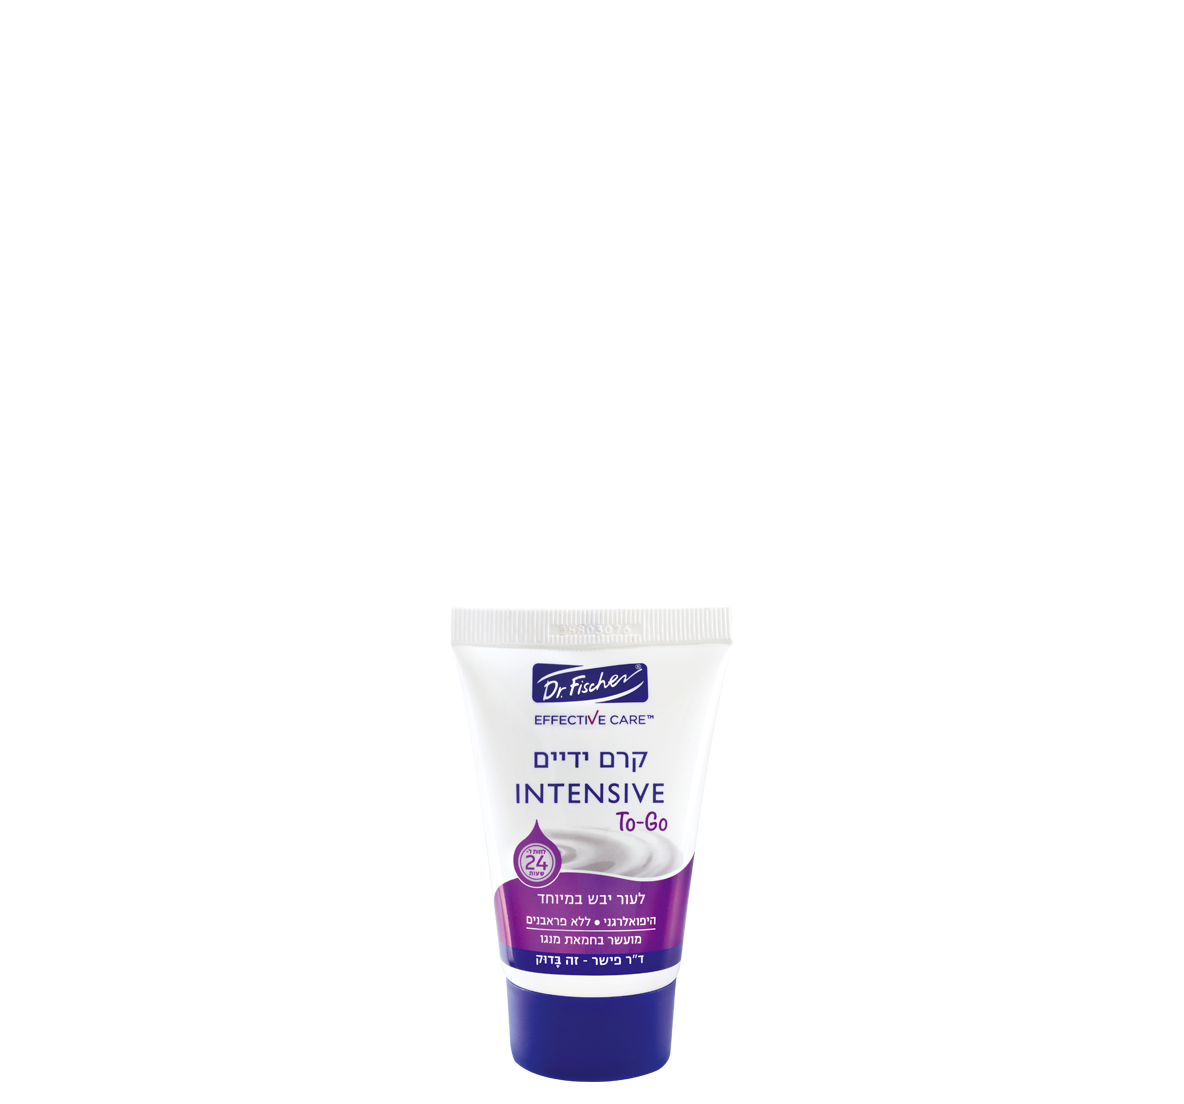 effective-care_intensive-50ml-hand-cream_1184x1104